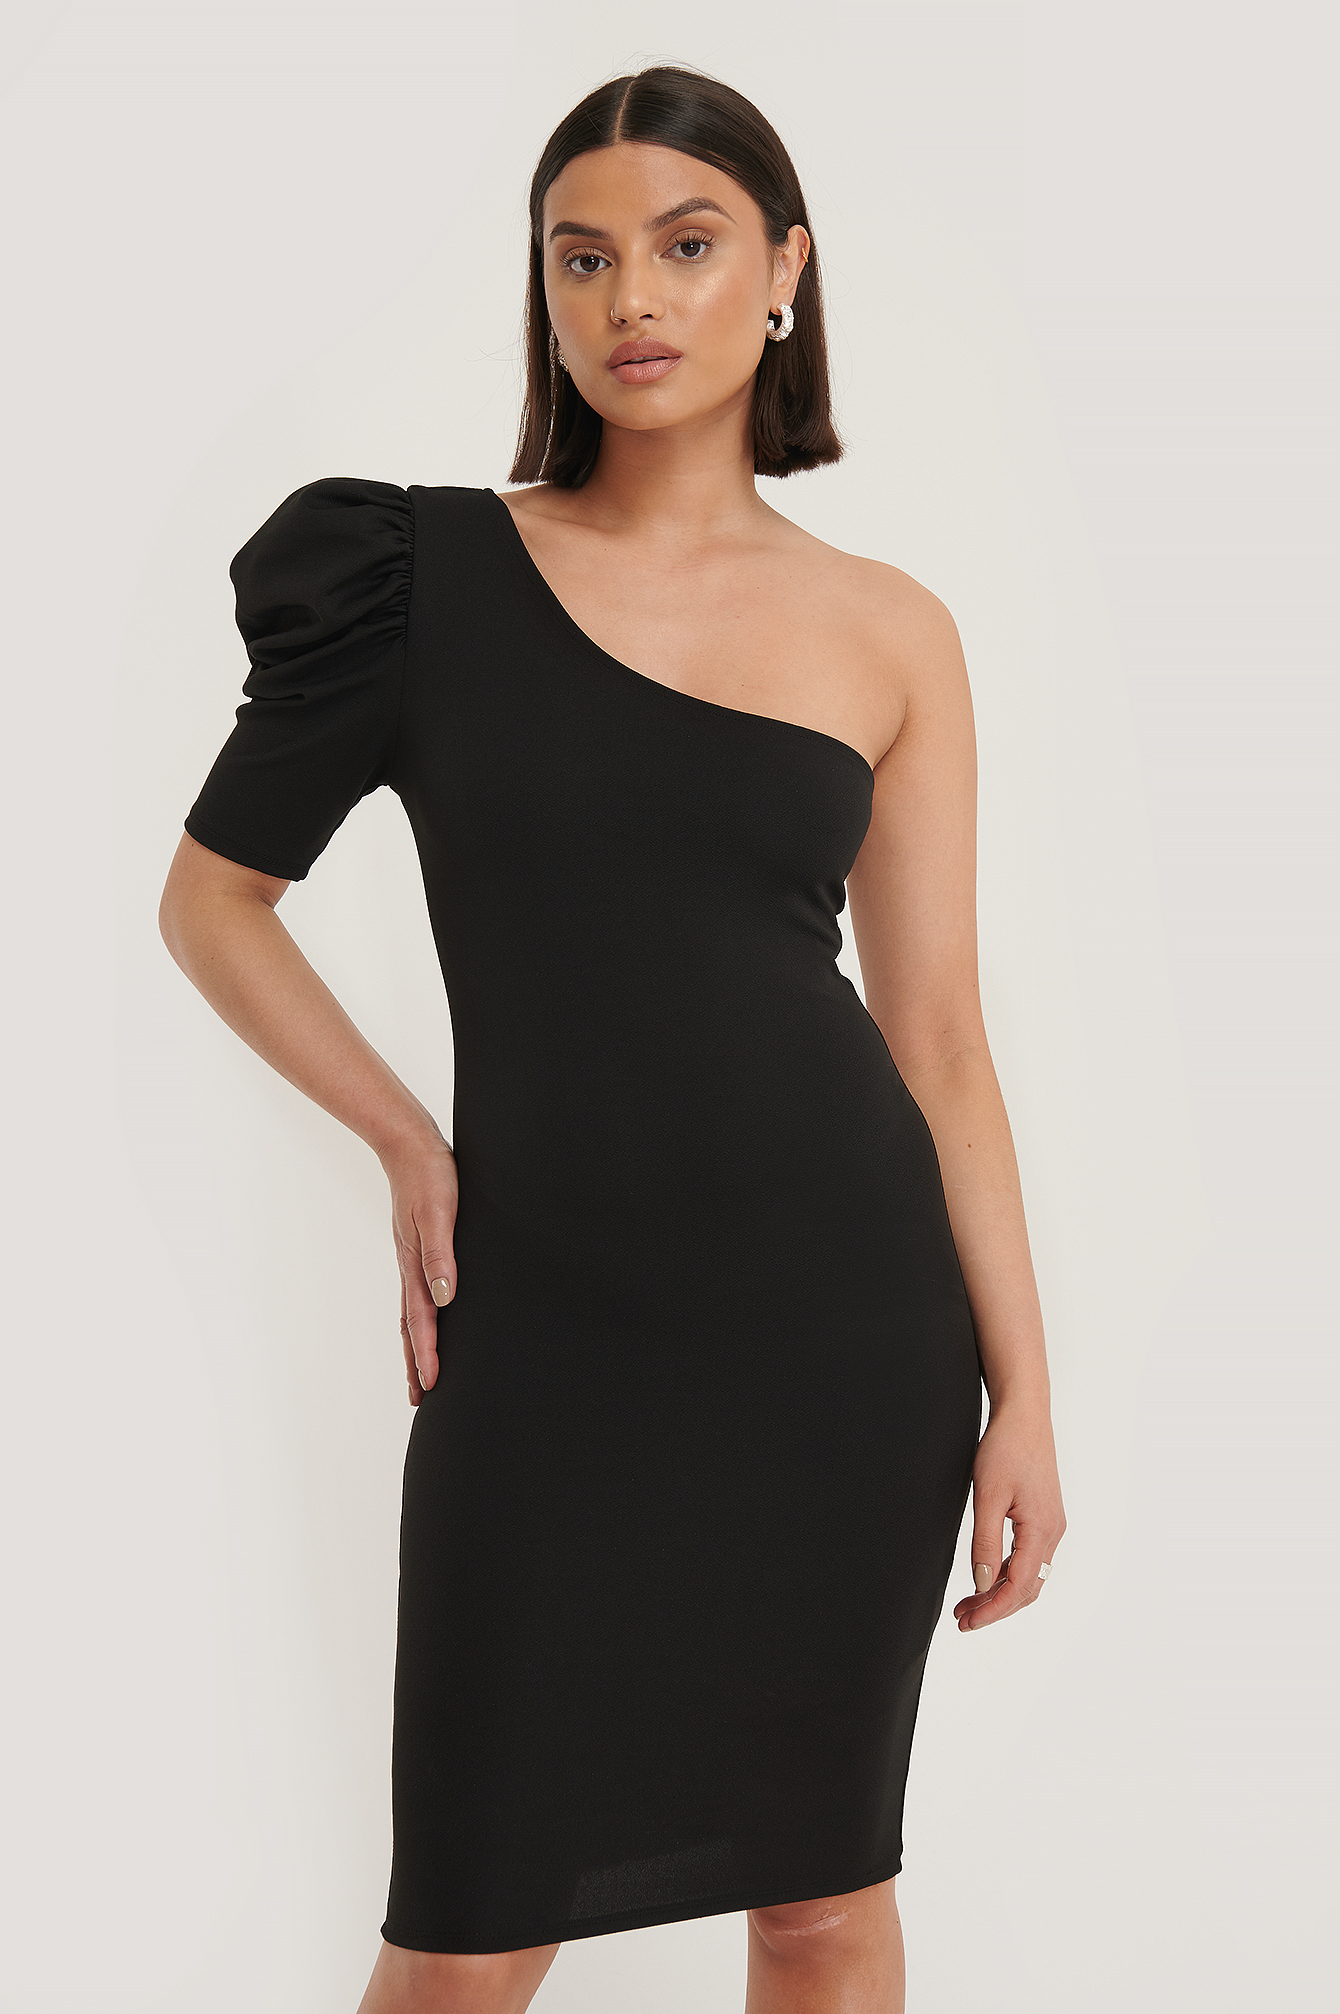 Black Single Sleeve Mini Dress